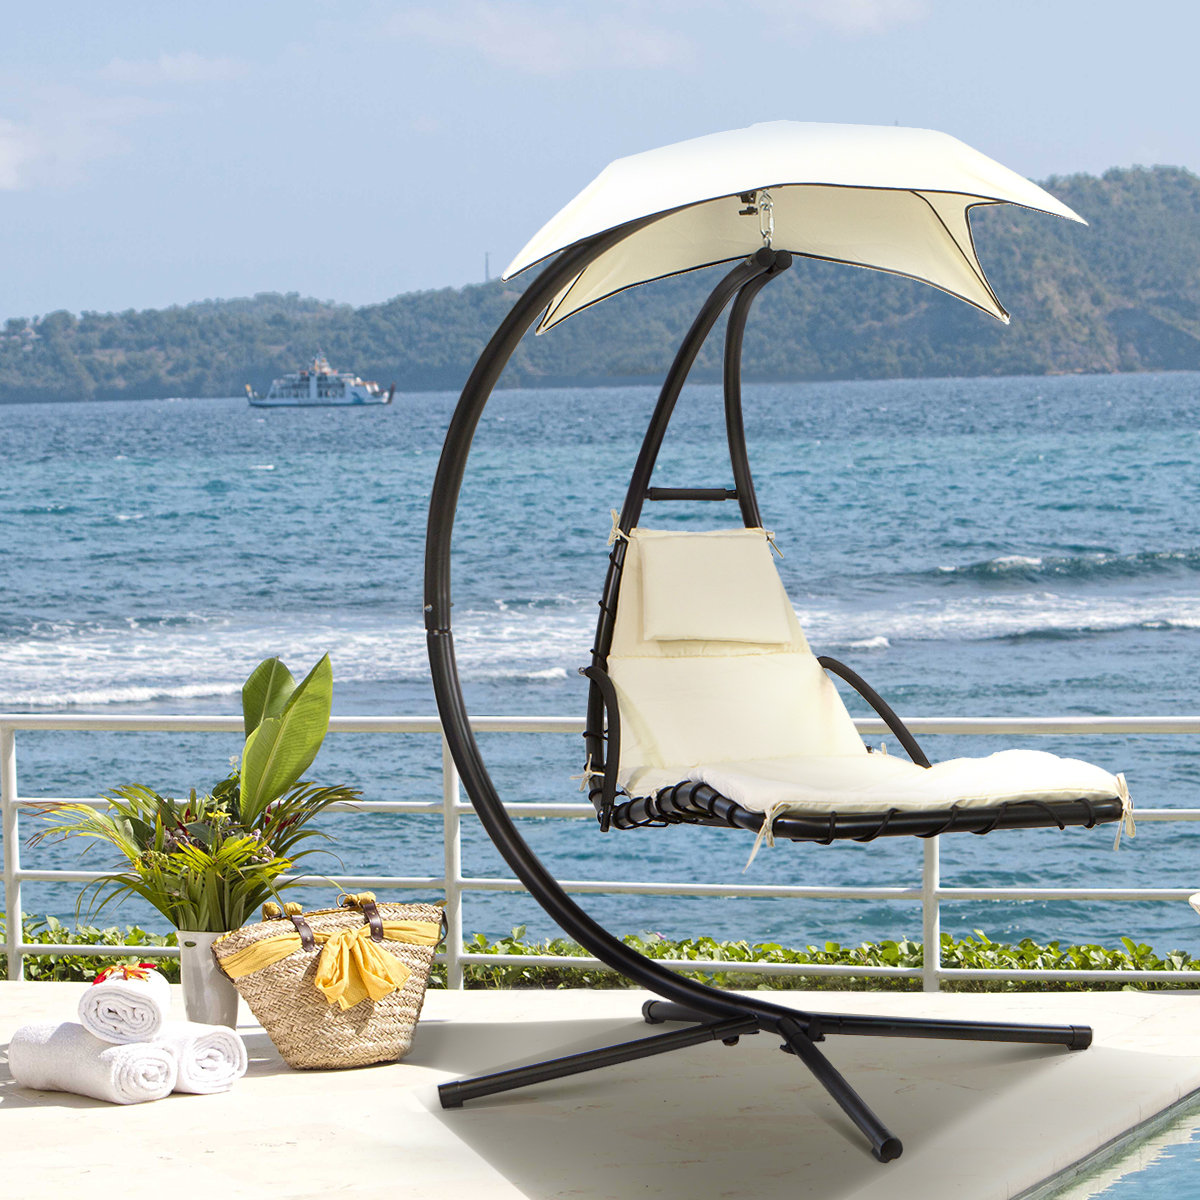 Barton Hanging Chaise Lounger Patio Chair Outdoor Floating ...